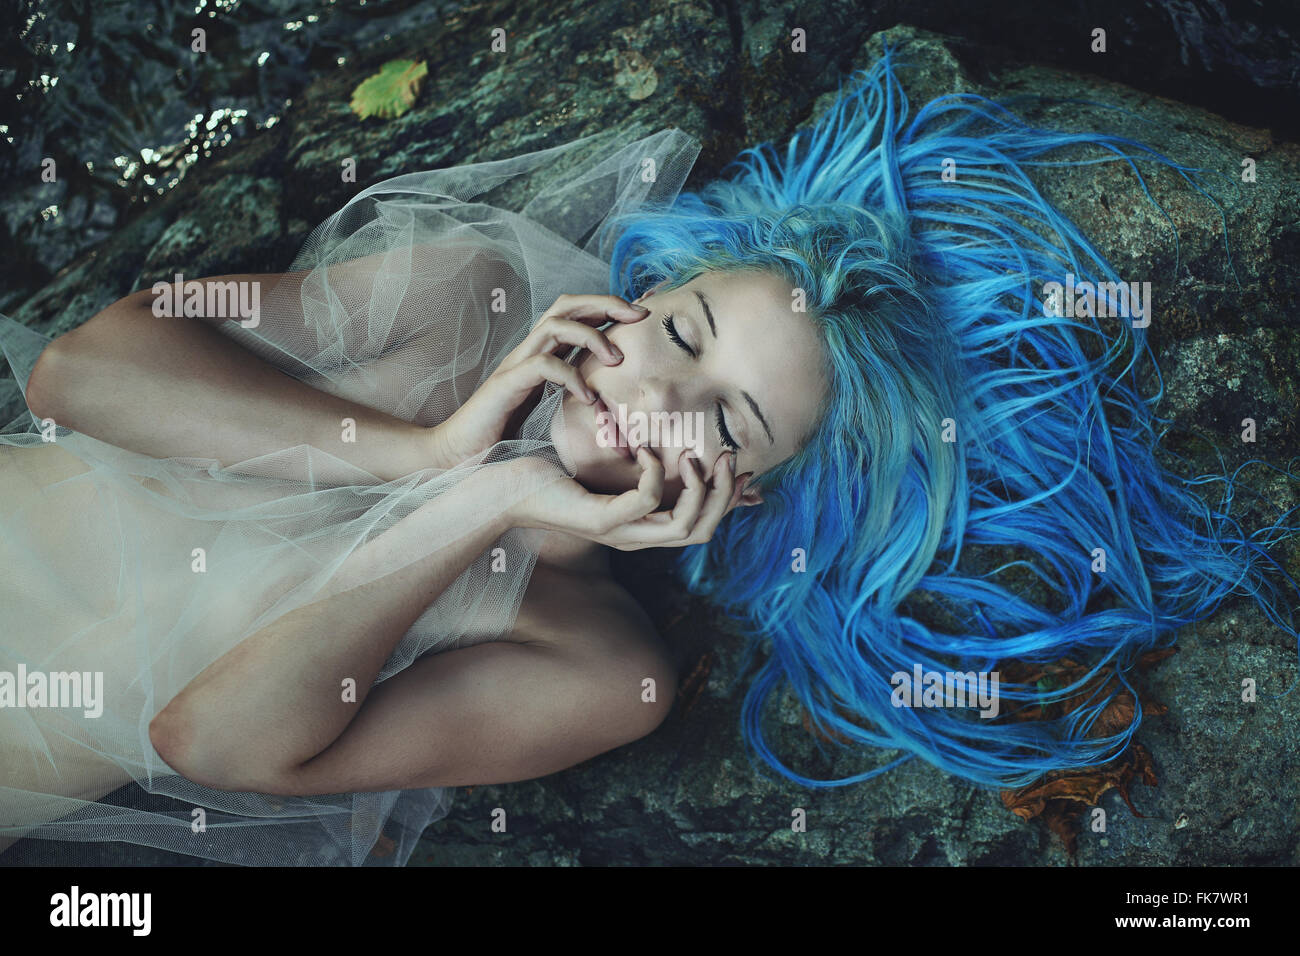 Beautiful mermaid sleeping on rocks . Fantasy and myth - Stock Image